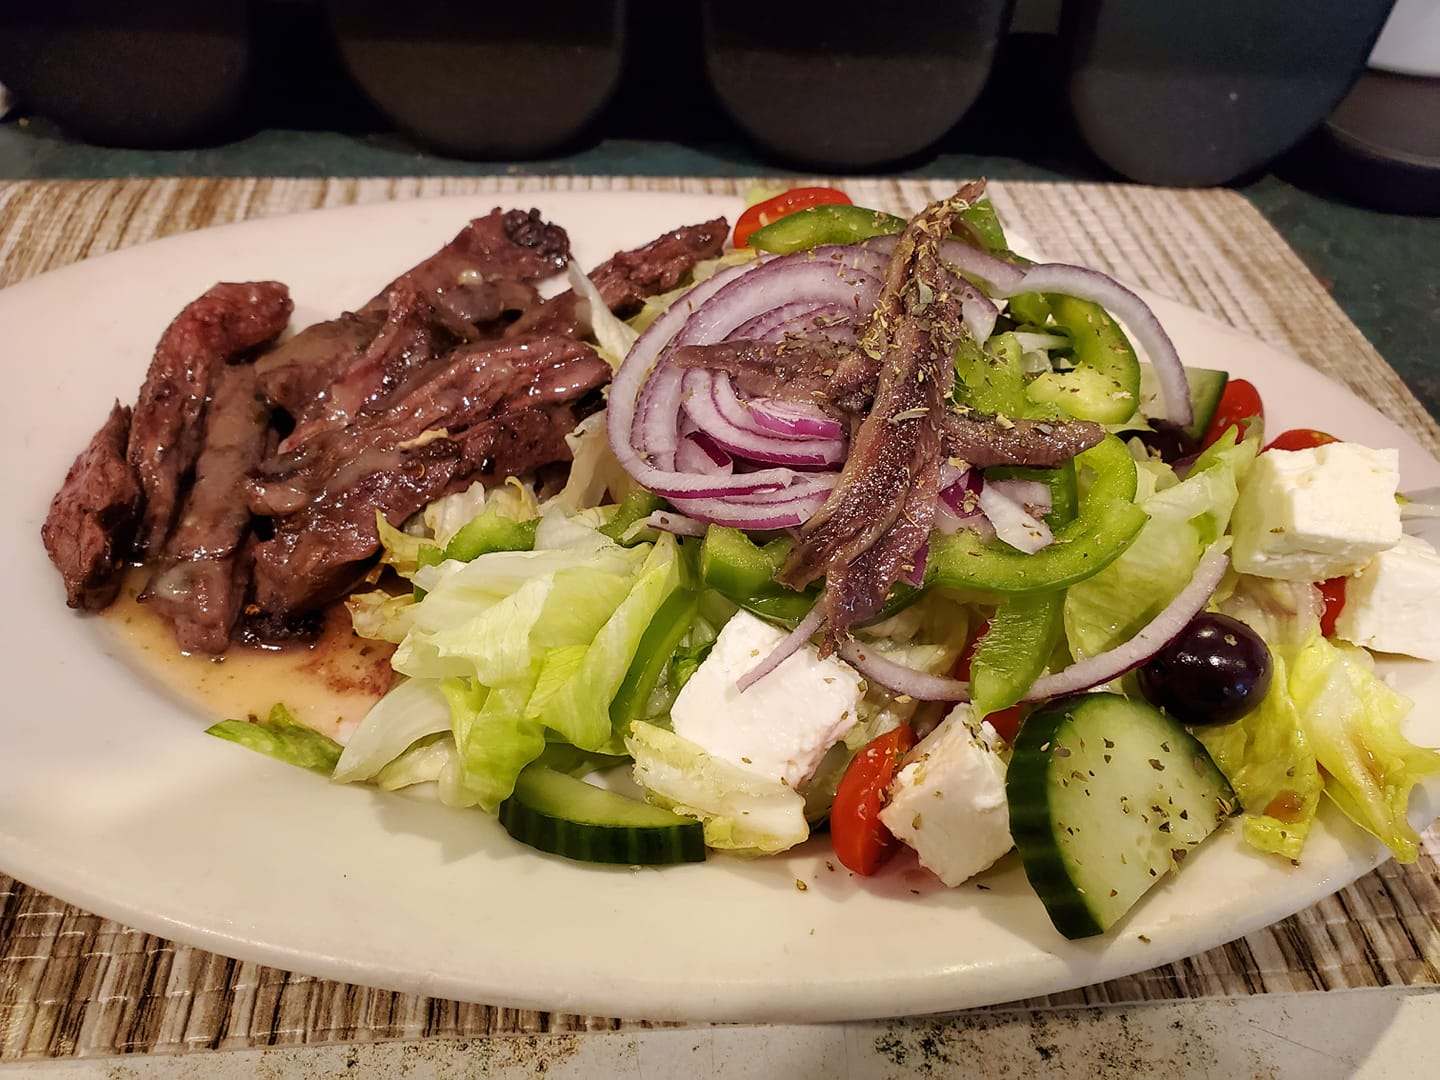 GREEK SKIRT STEAK PLATTER